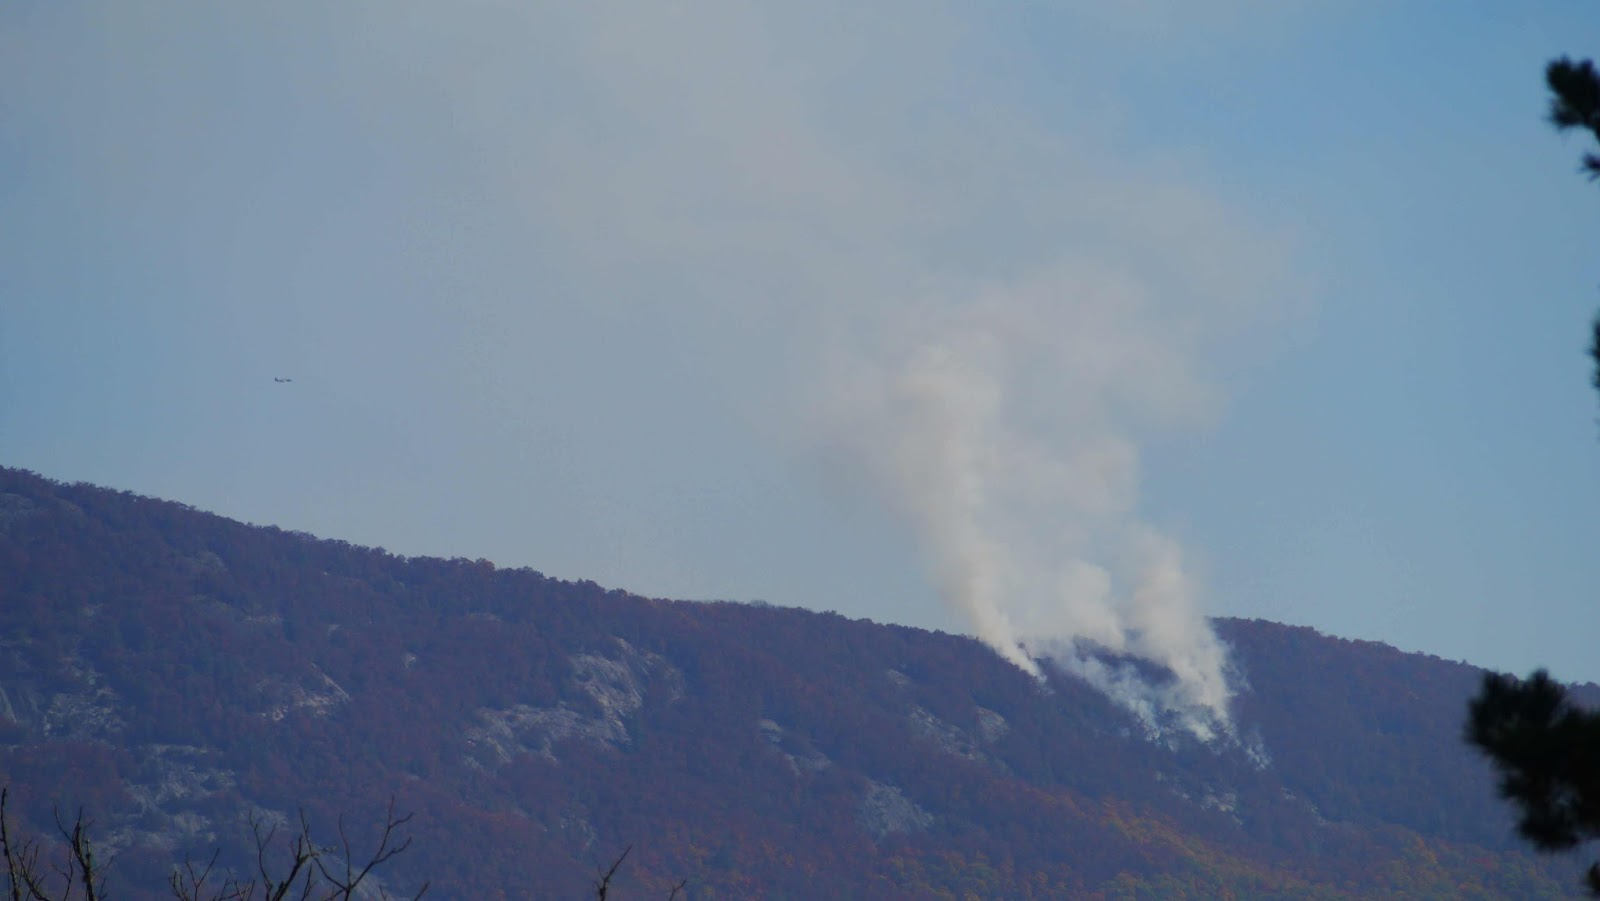 Jones Gap Fire Photo by Bobby Coggins